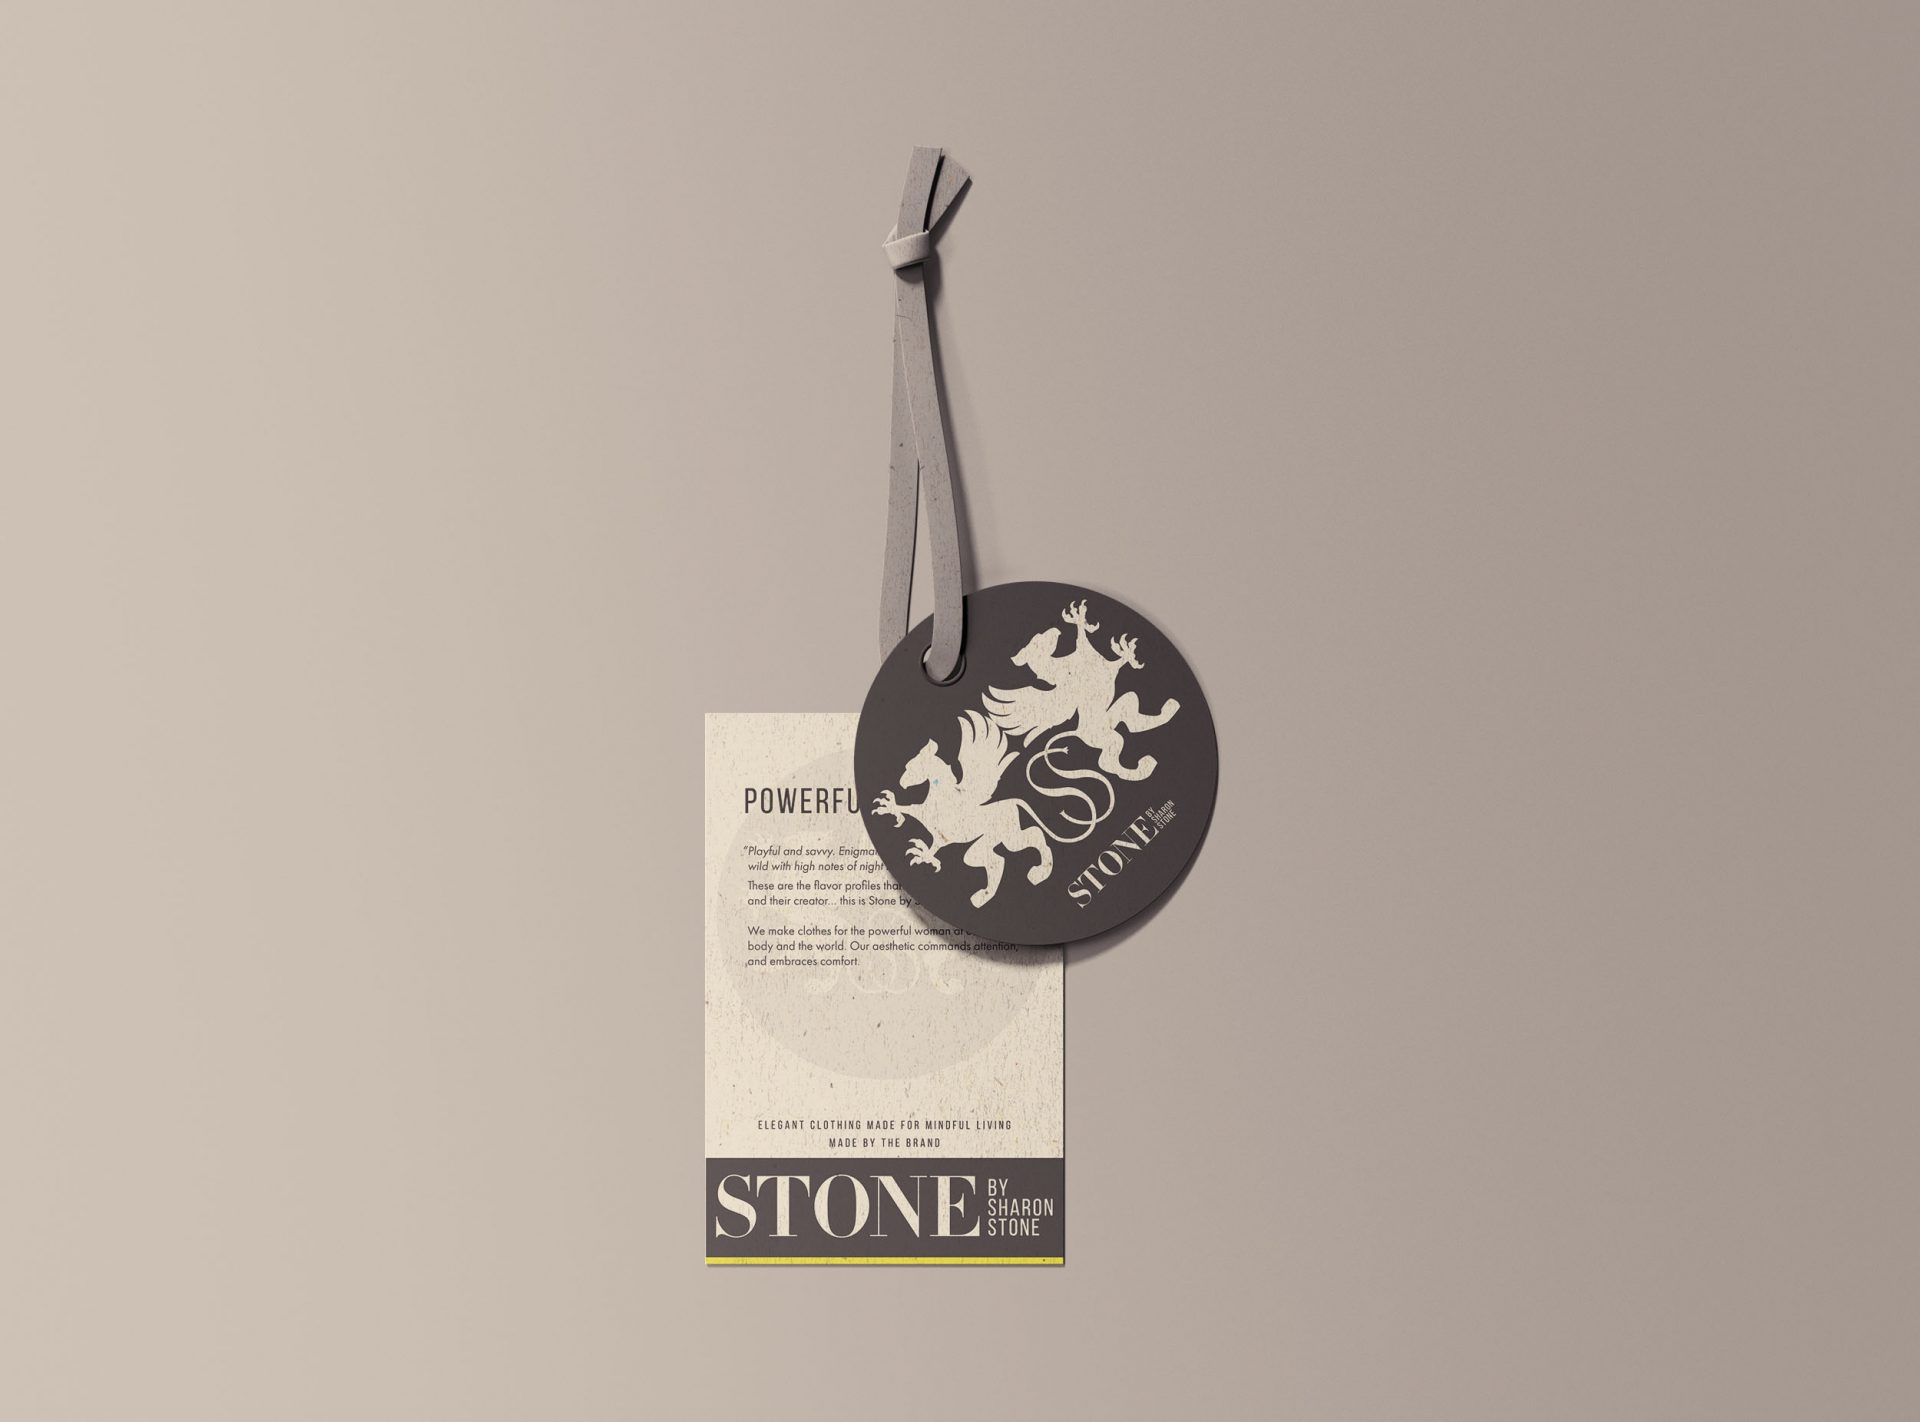 Stone by Sharon Stone label prototypes